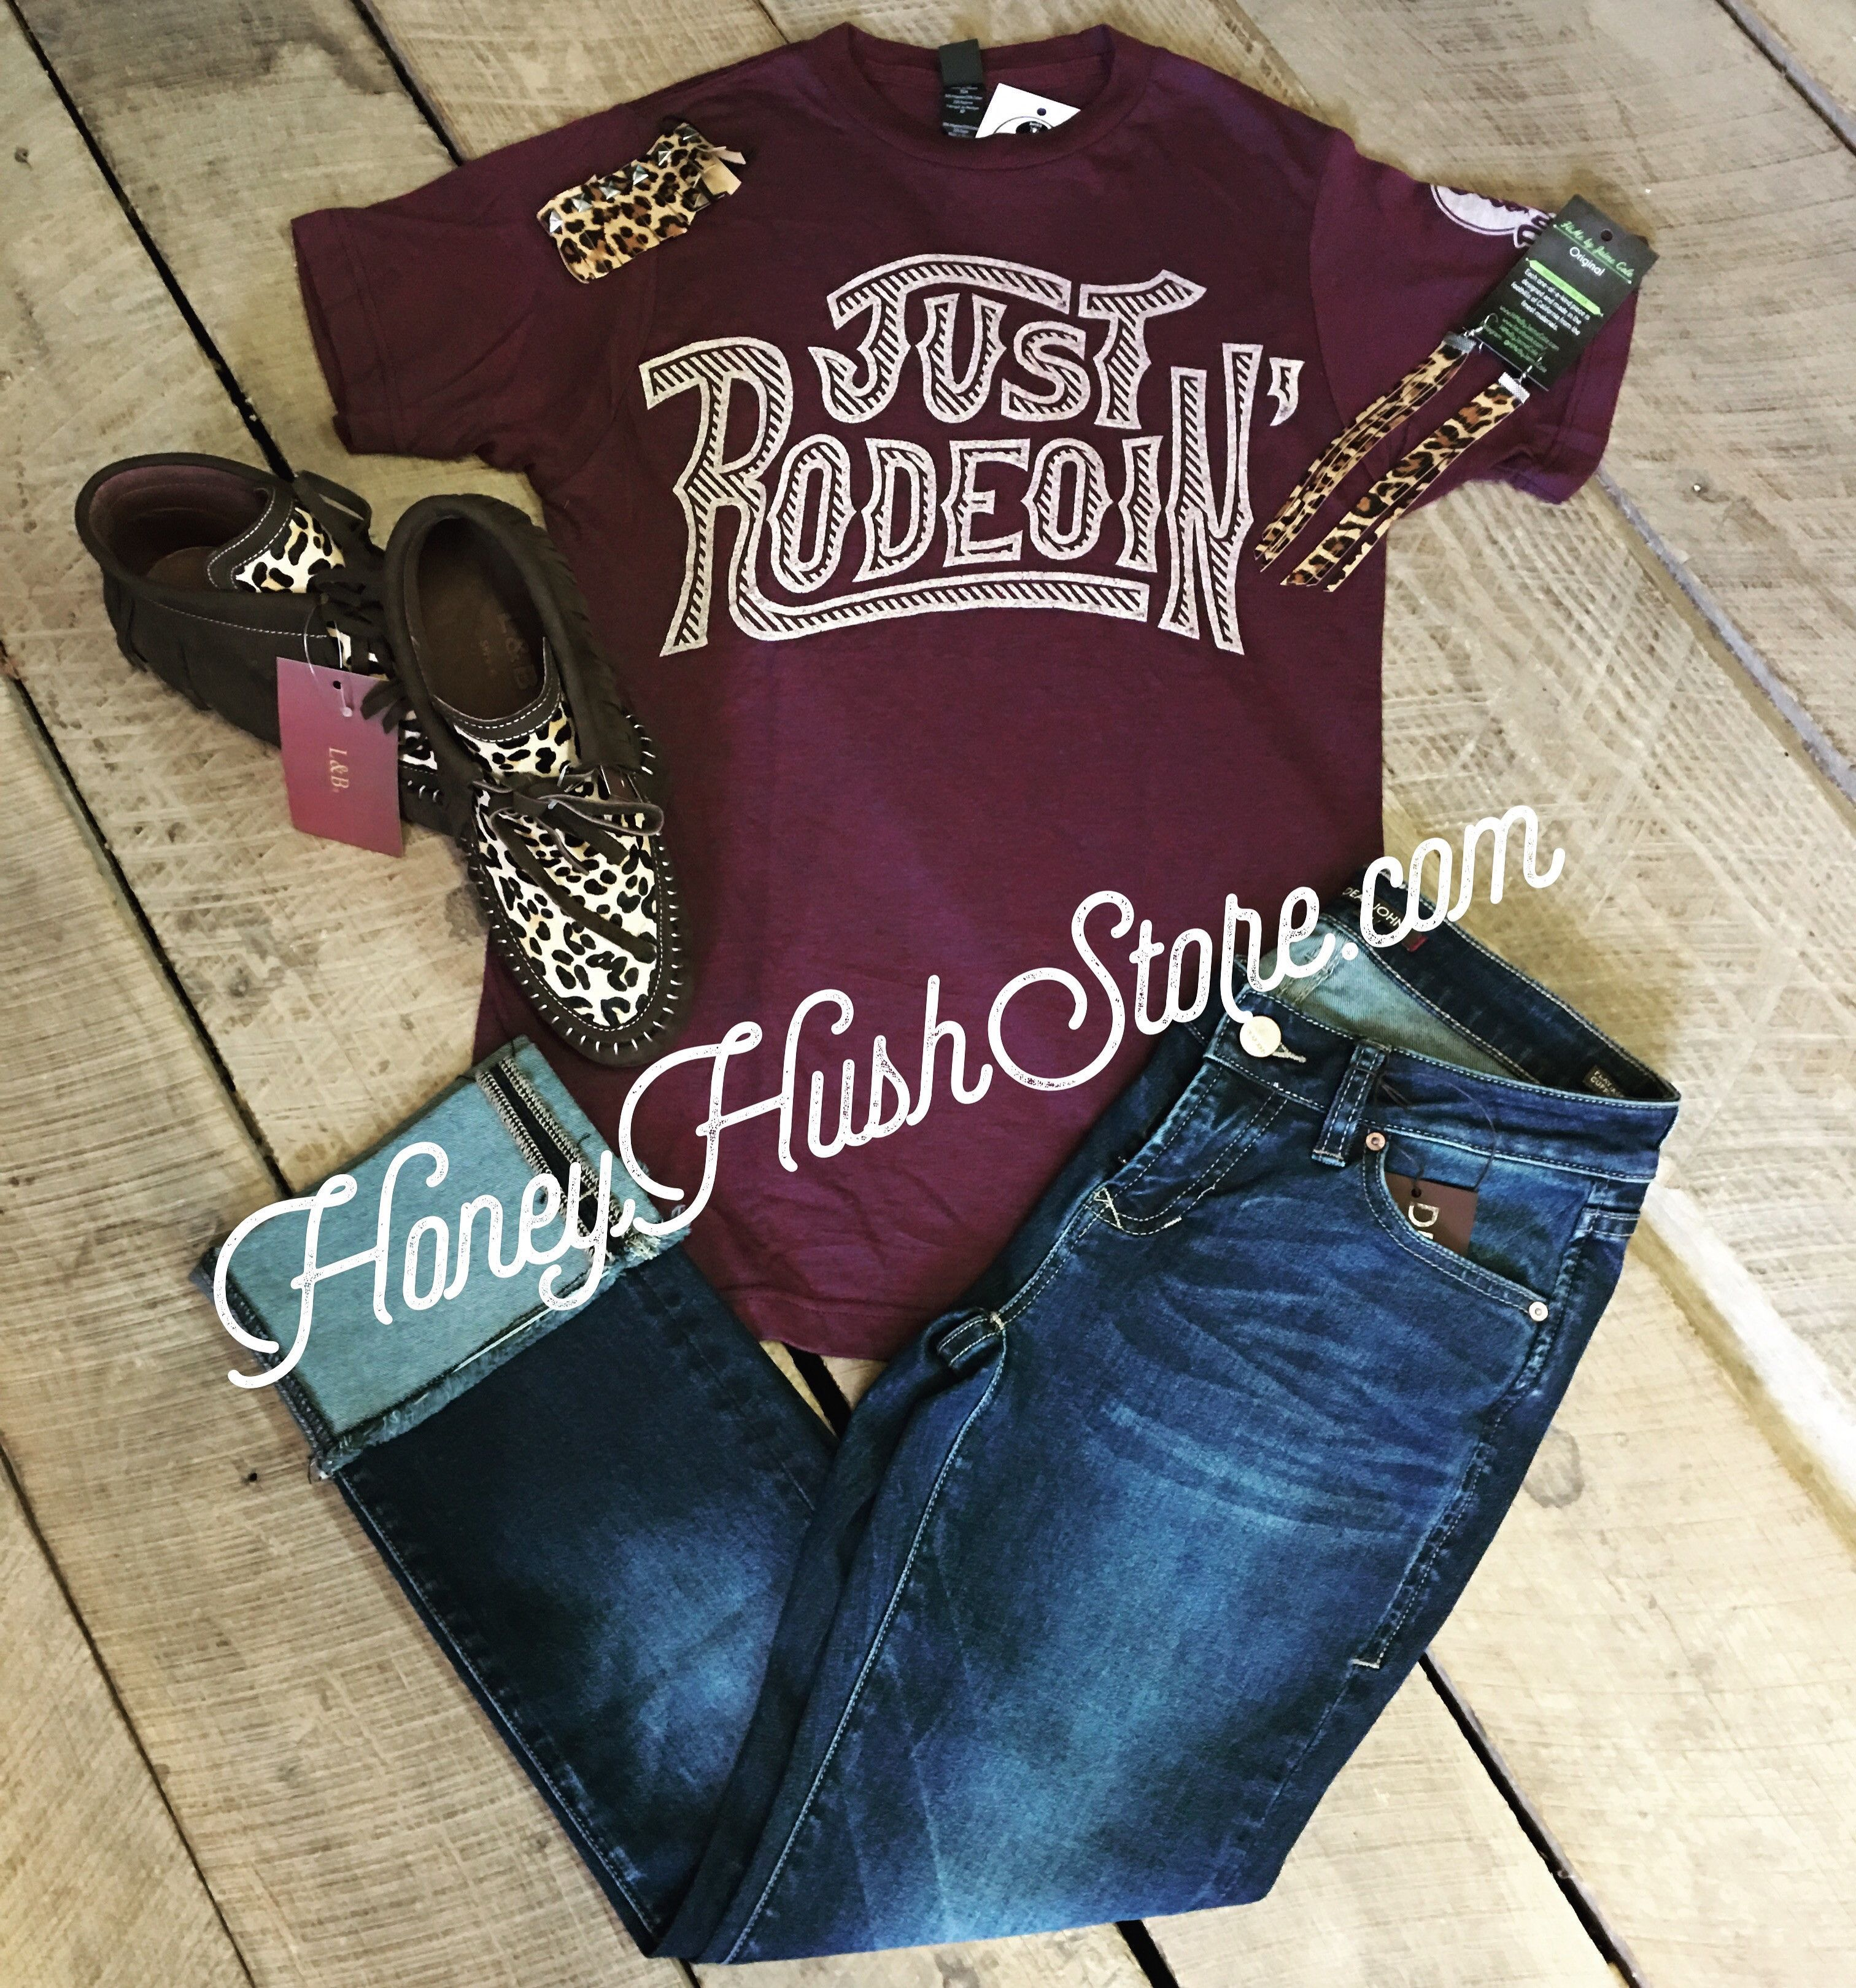 623232c3f Dale Brisby Just Rodeoin Tee in 2019 | I Wear What I Want | Dale ...